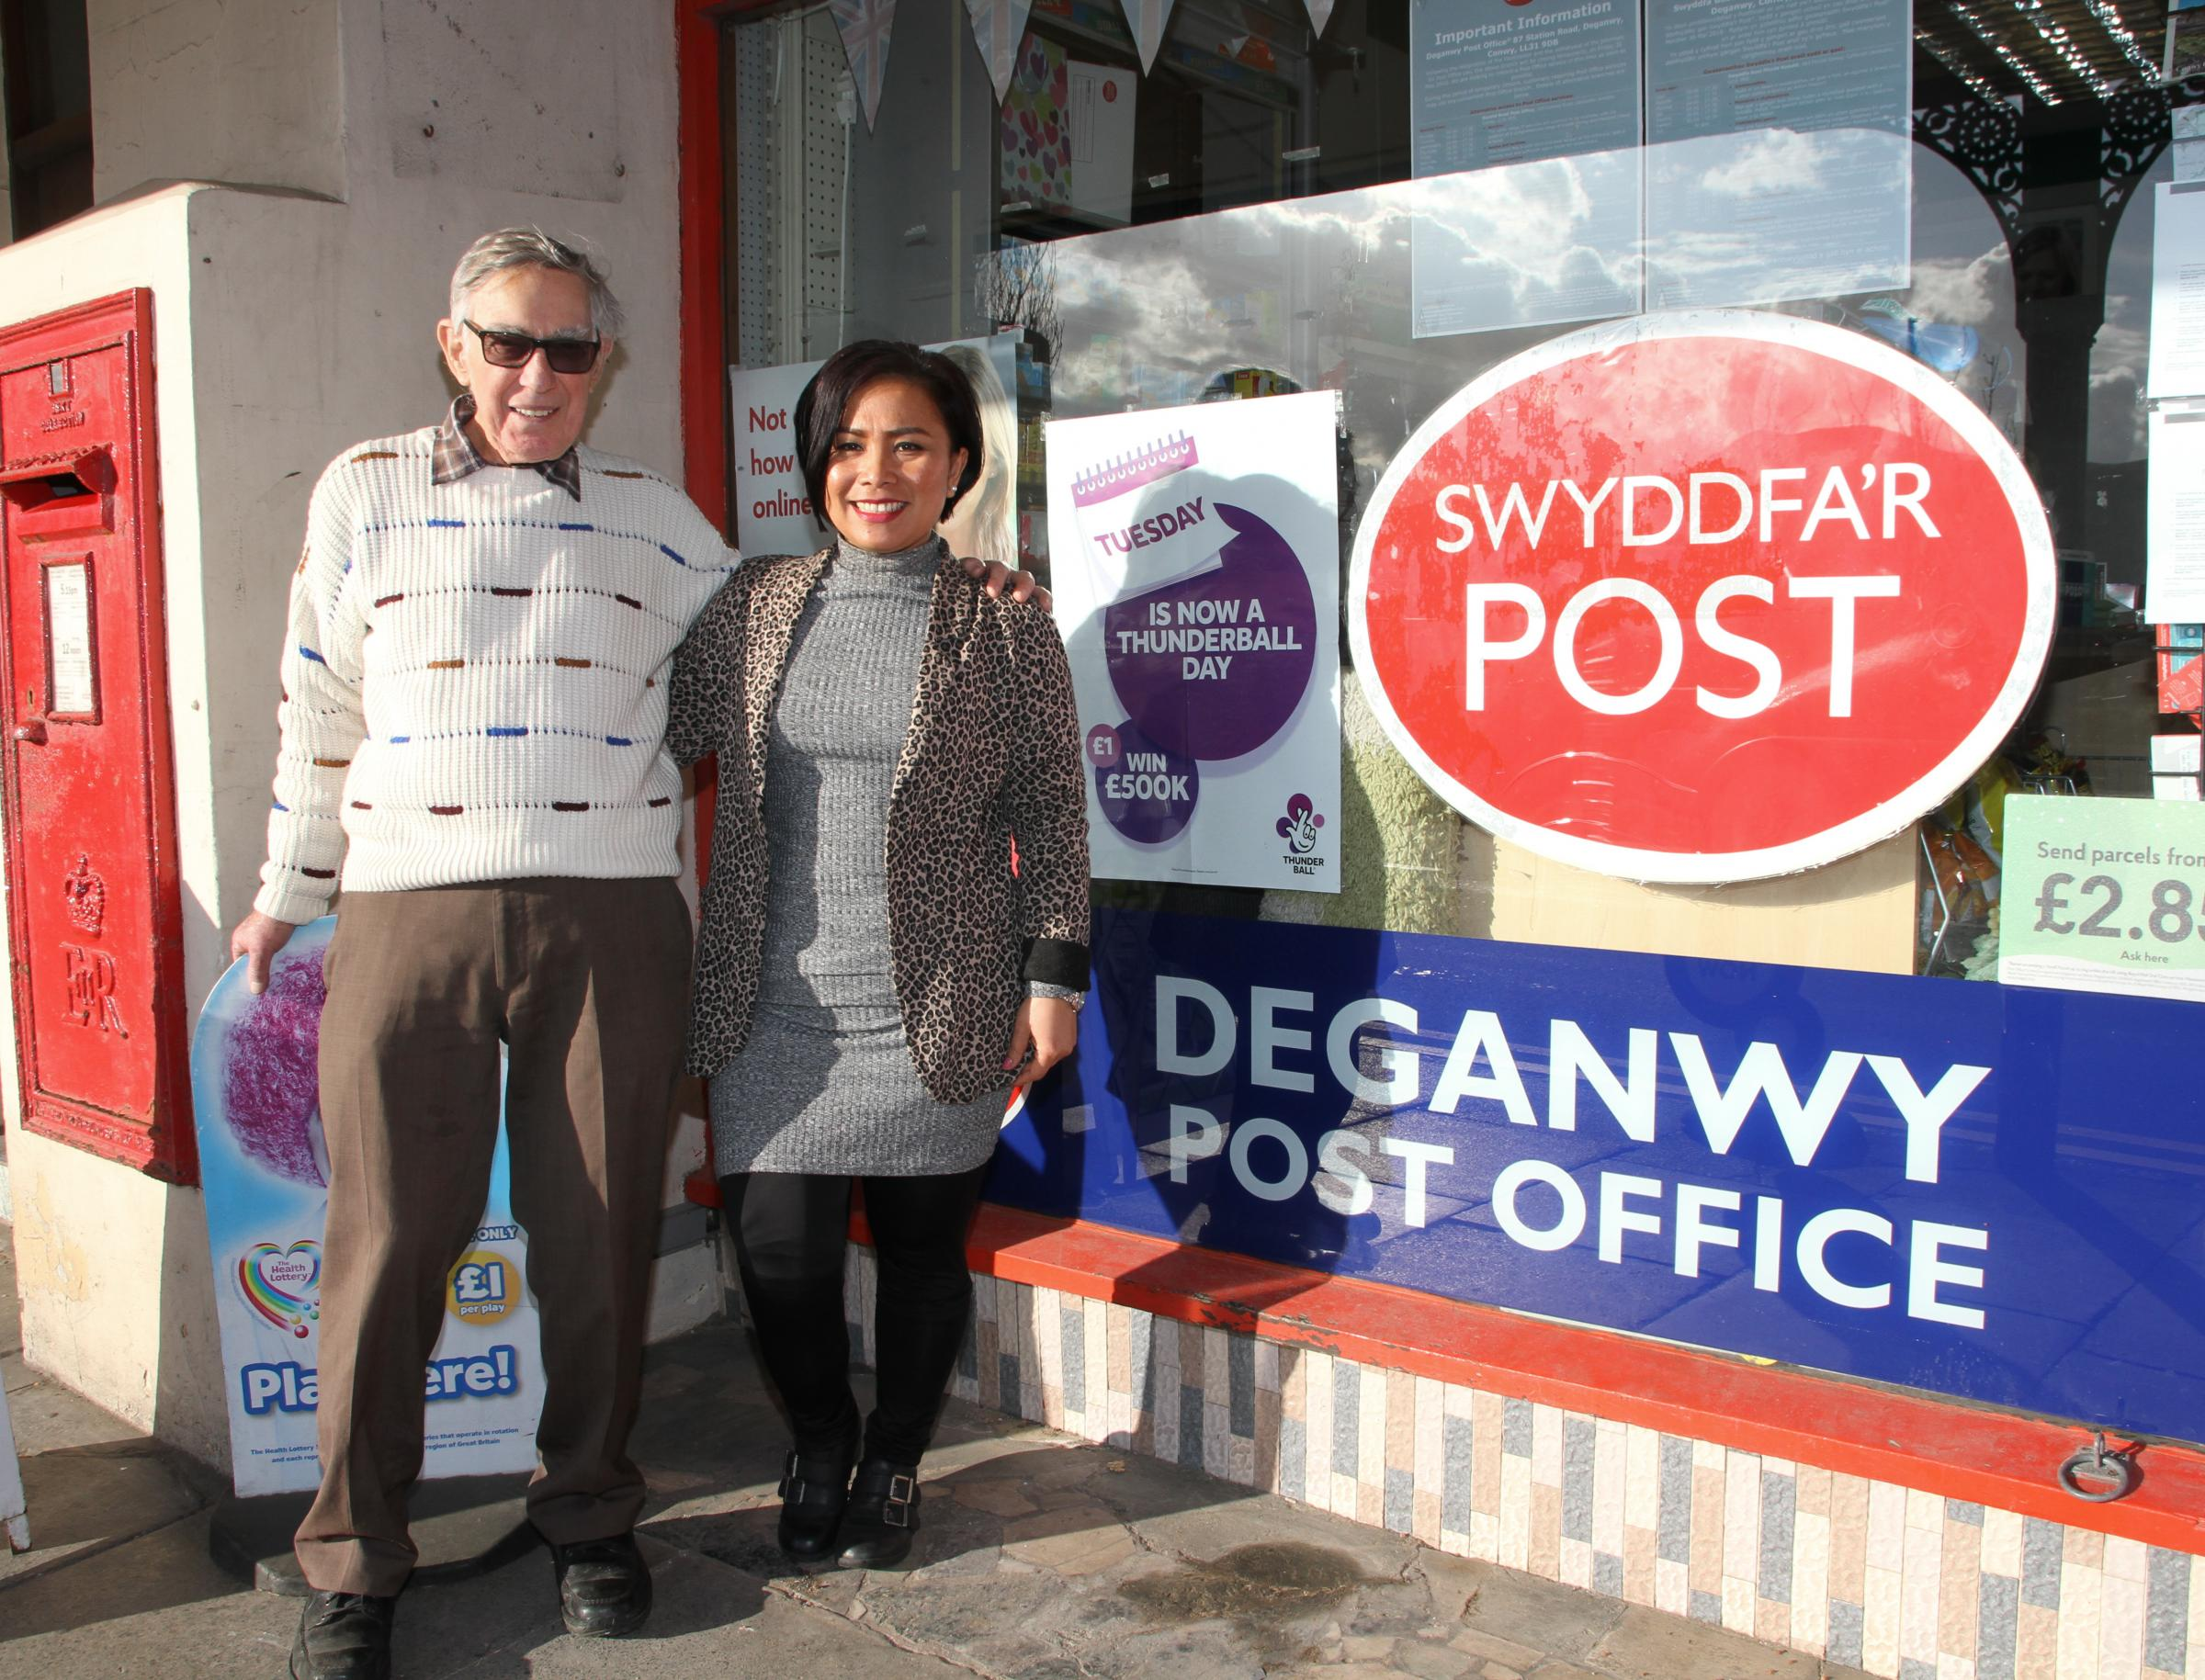 John McEwen and Roseerna Silalahi at the Deganwy Post Office. Picture: Kerry Roberts, KR150318j